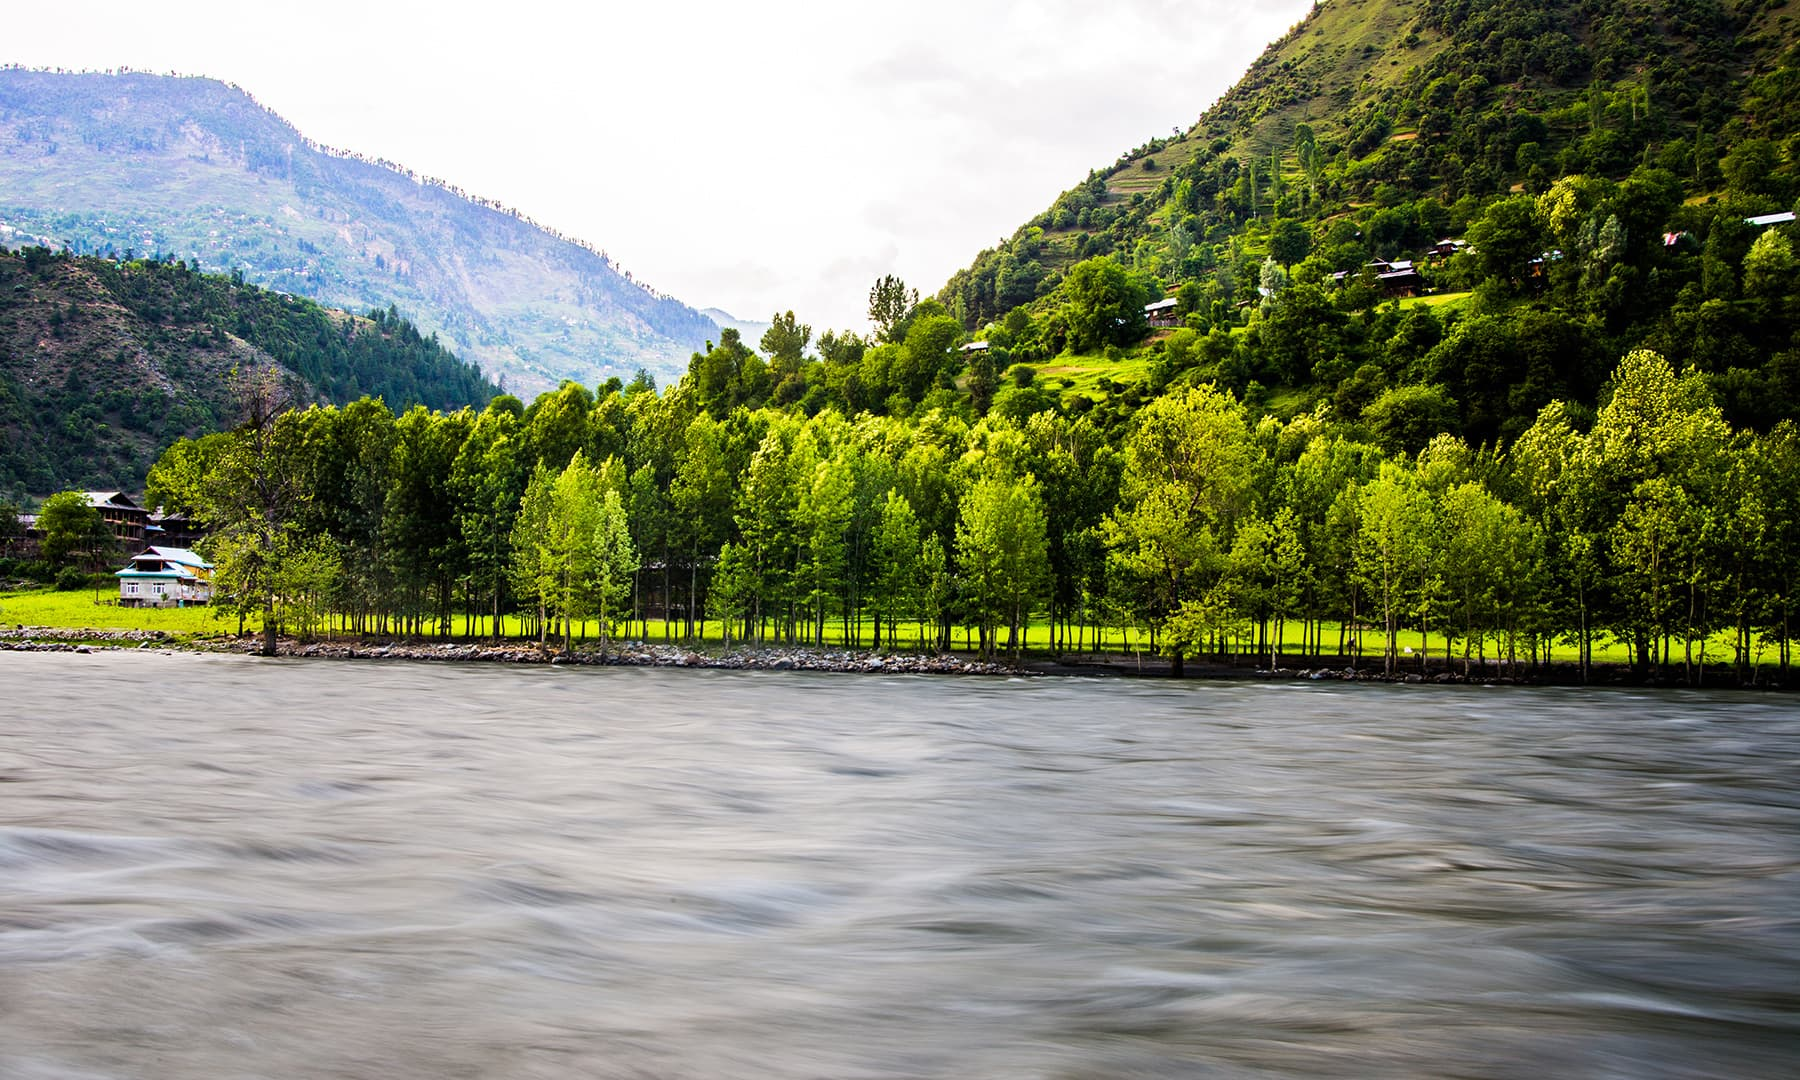 At the banks of the Neelum River in Keran. —Marvi Soomro